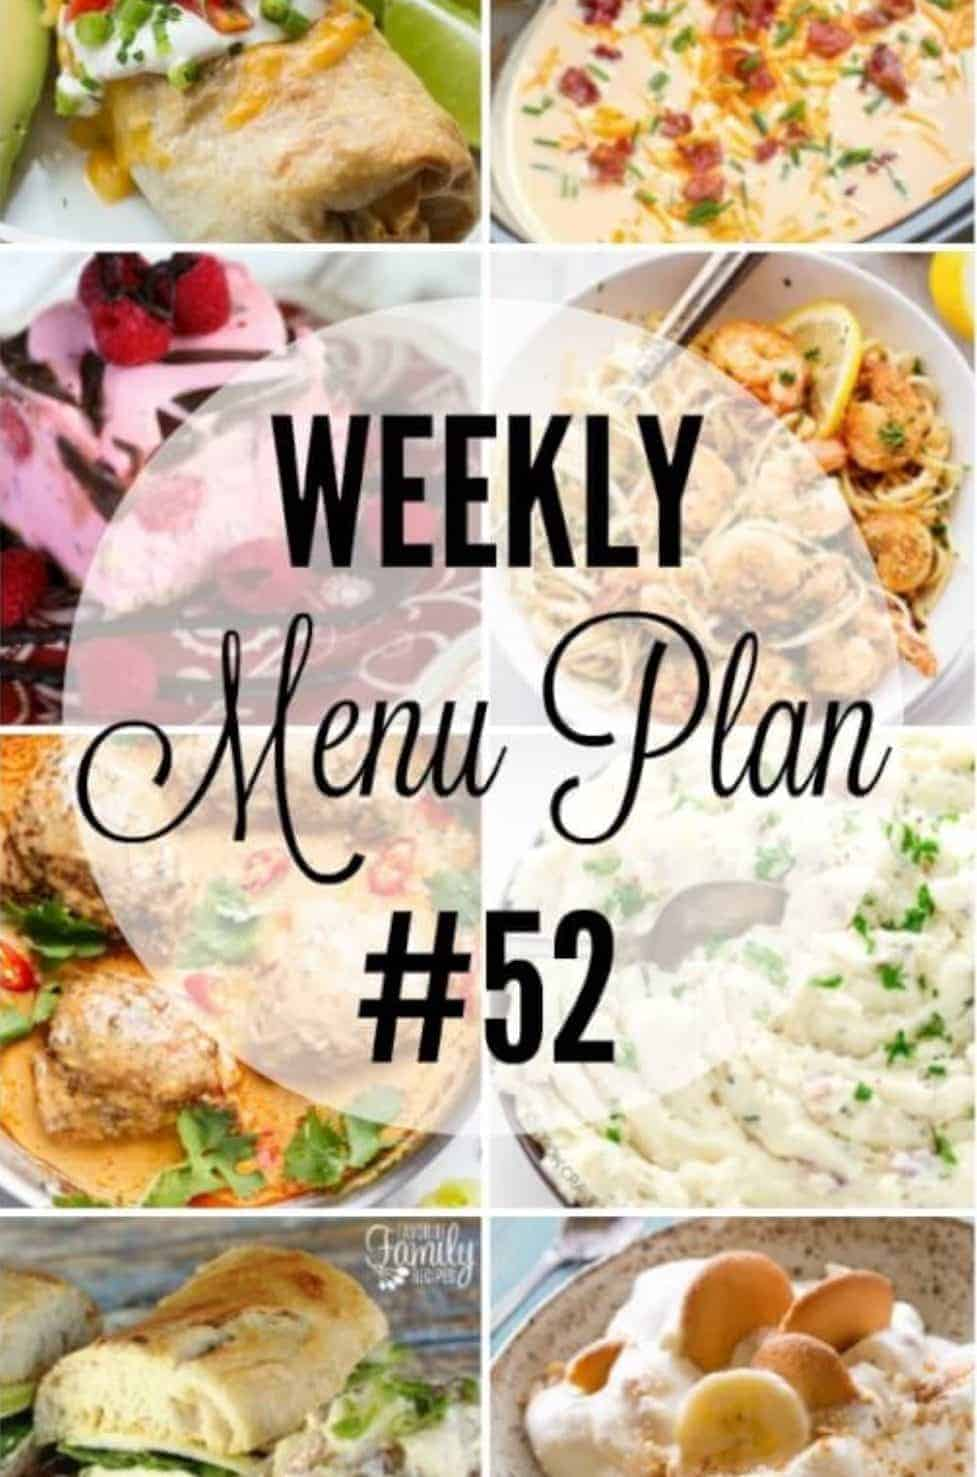 WEEKLY MEAL PLAN 52